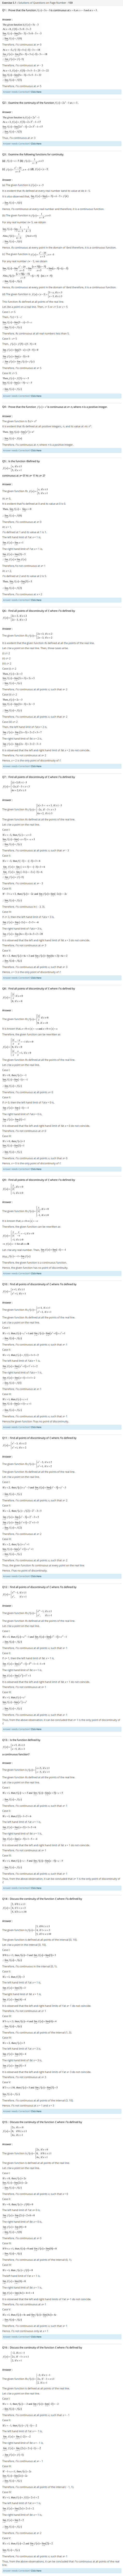 NCERT Solutions for Class 12 Maths Chapter 5 Continuity and Differentiability 1